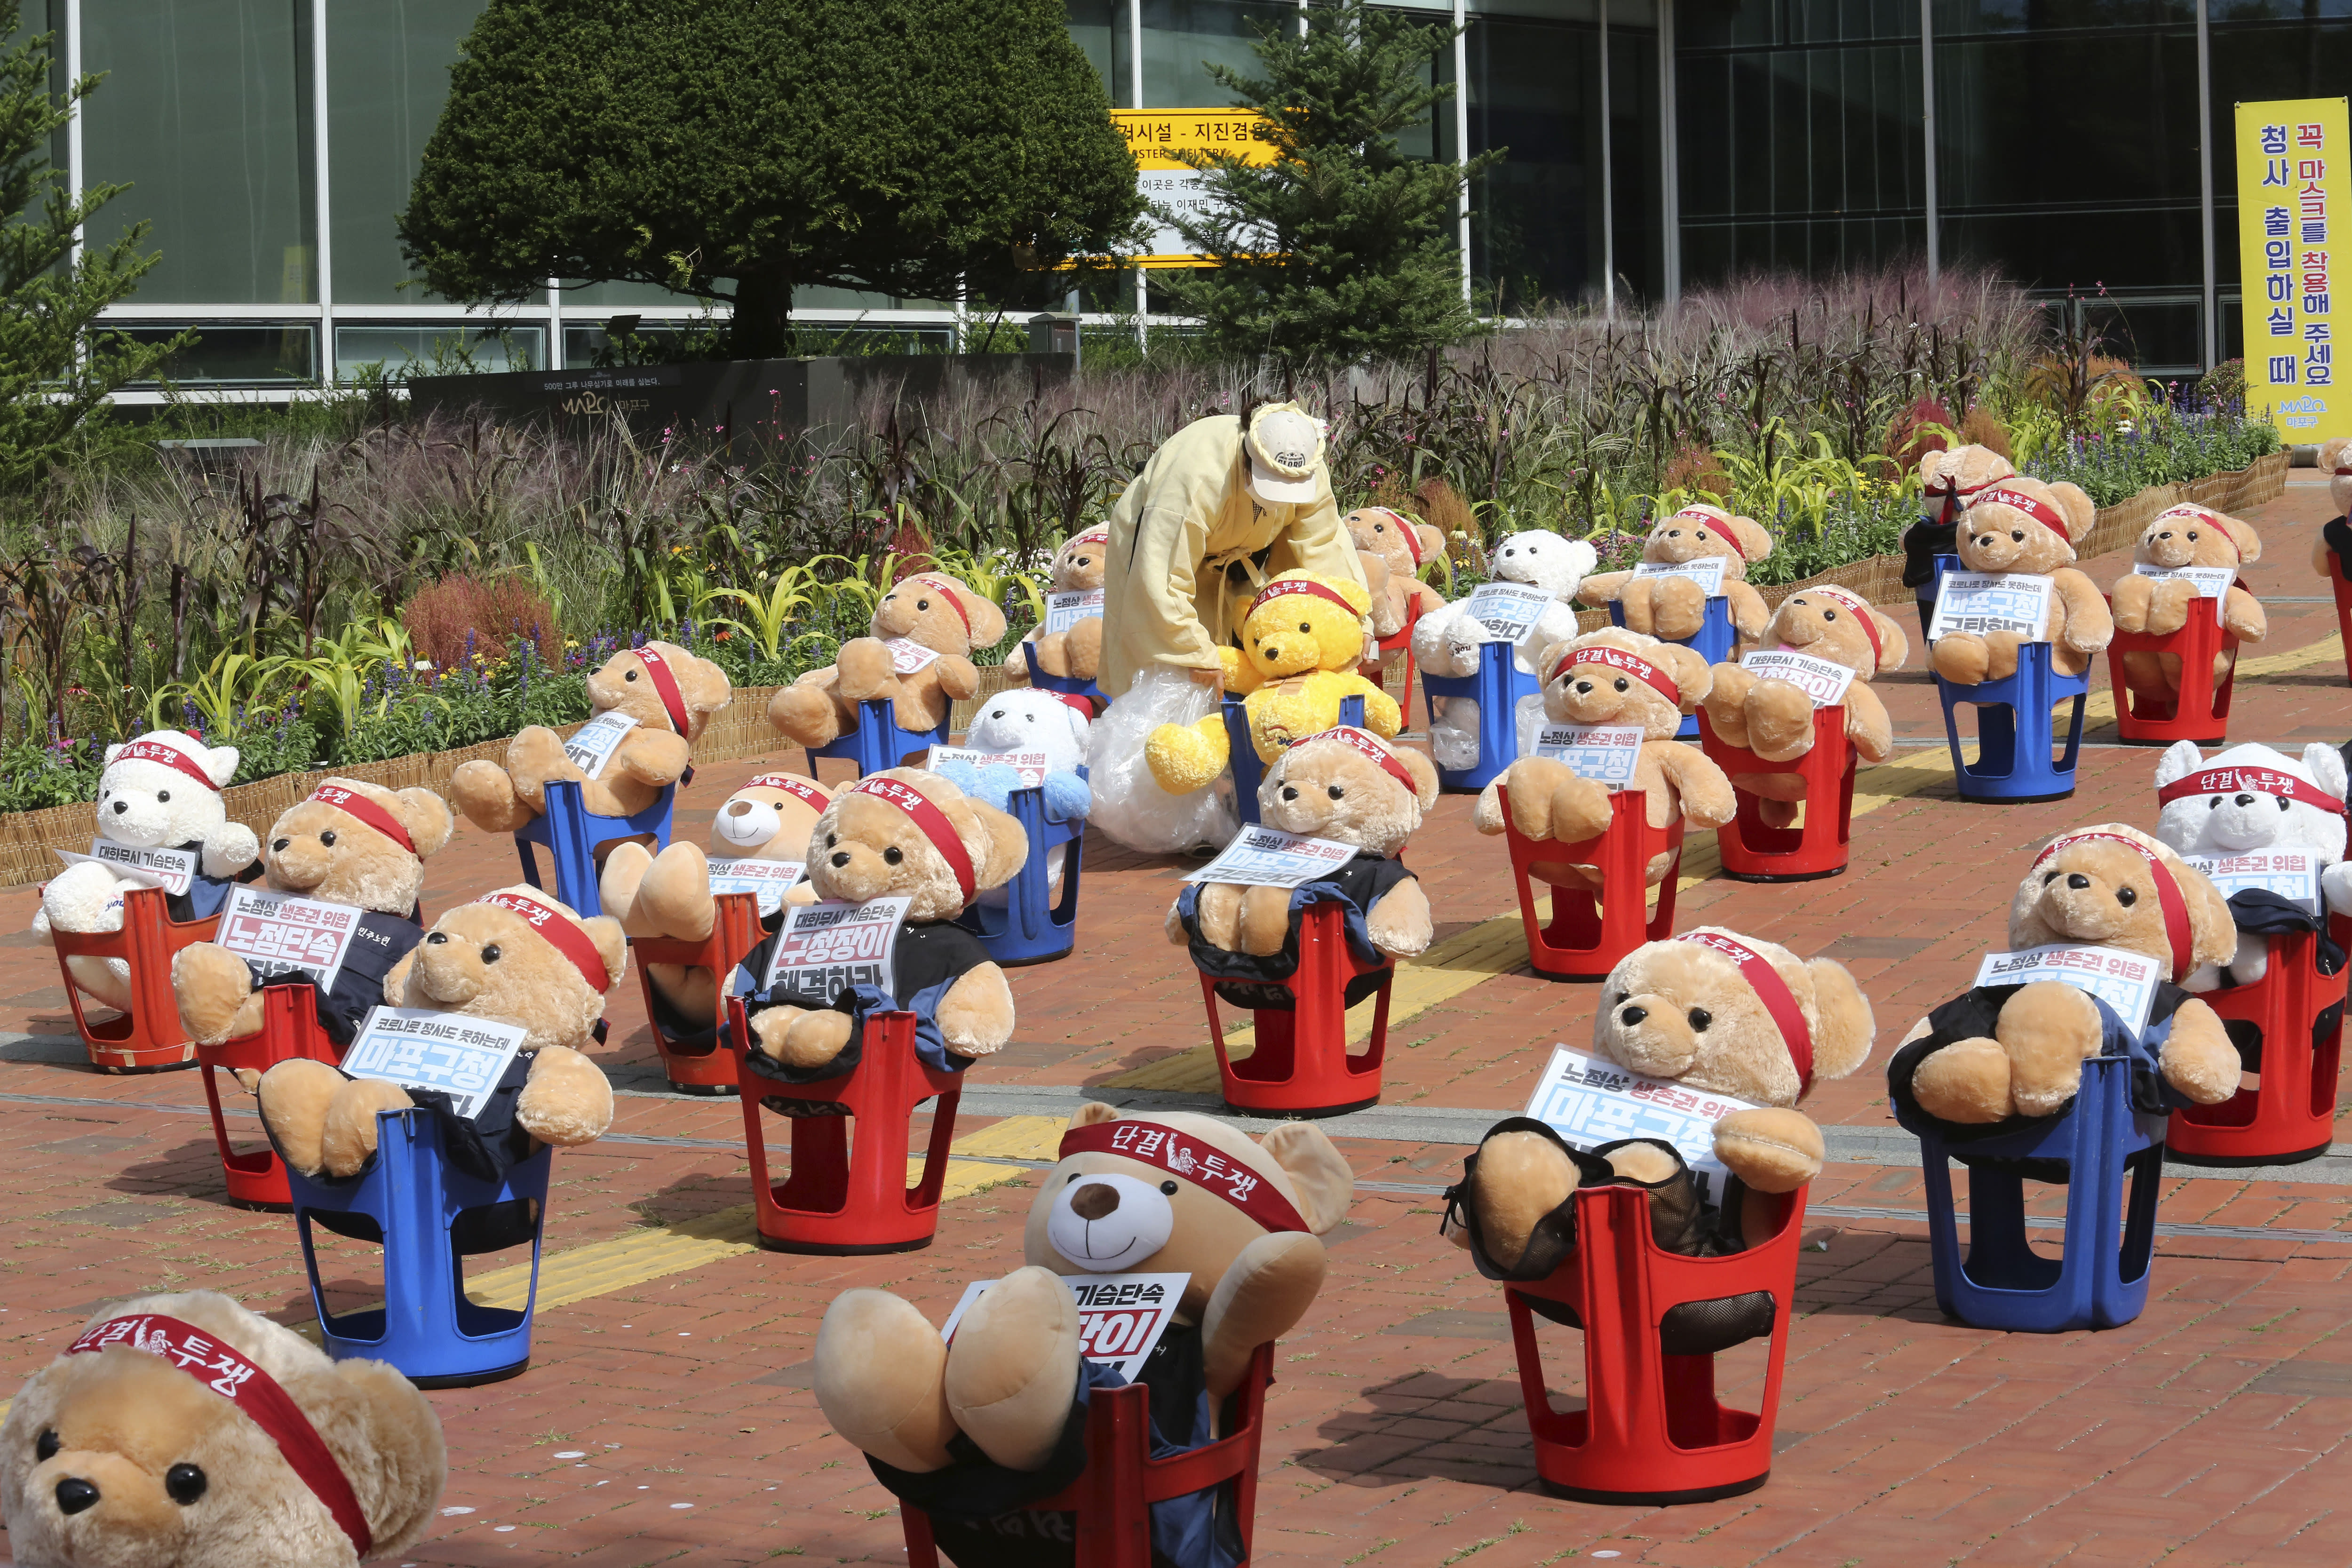 """A street vendor places a teddy bear to protest against a crackdown on illegal street vendors, in front of the Mapo ward office in Seoul, South Korea, Thursday, Sept. 24, 2020. Street vendors replaced protestors with teddy bears to avoid the violation of an ongoing ban on rallies with more than 10 people amid the coronavirus pandemic. The signs read: """"Stop crackdown."""" (AP Photo/Ahn Young-joon)"""